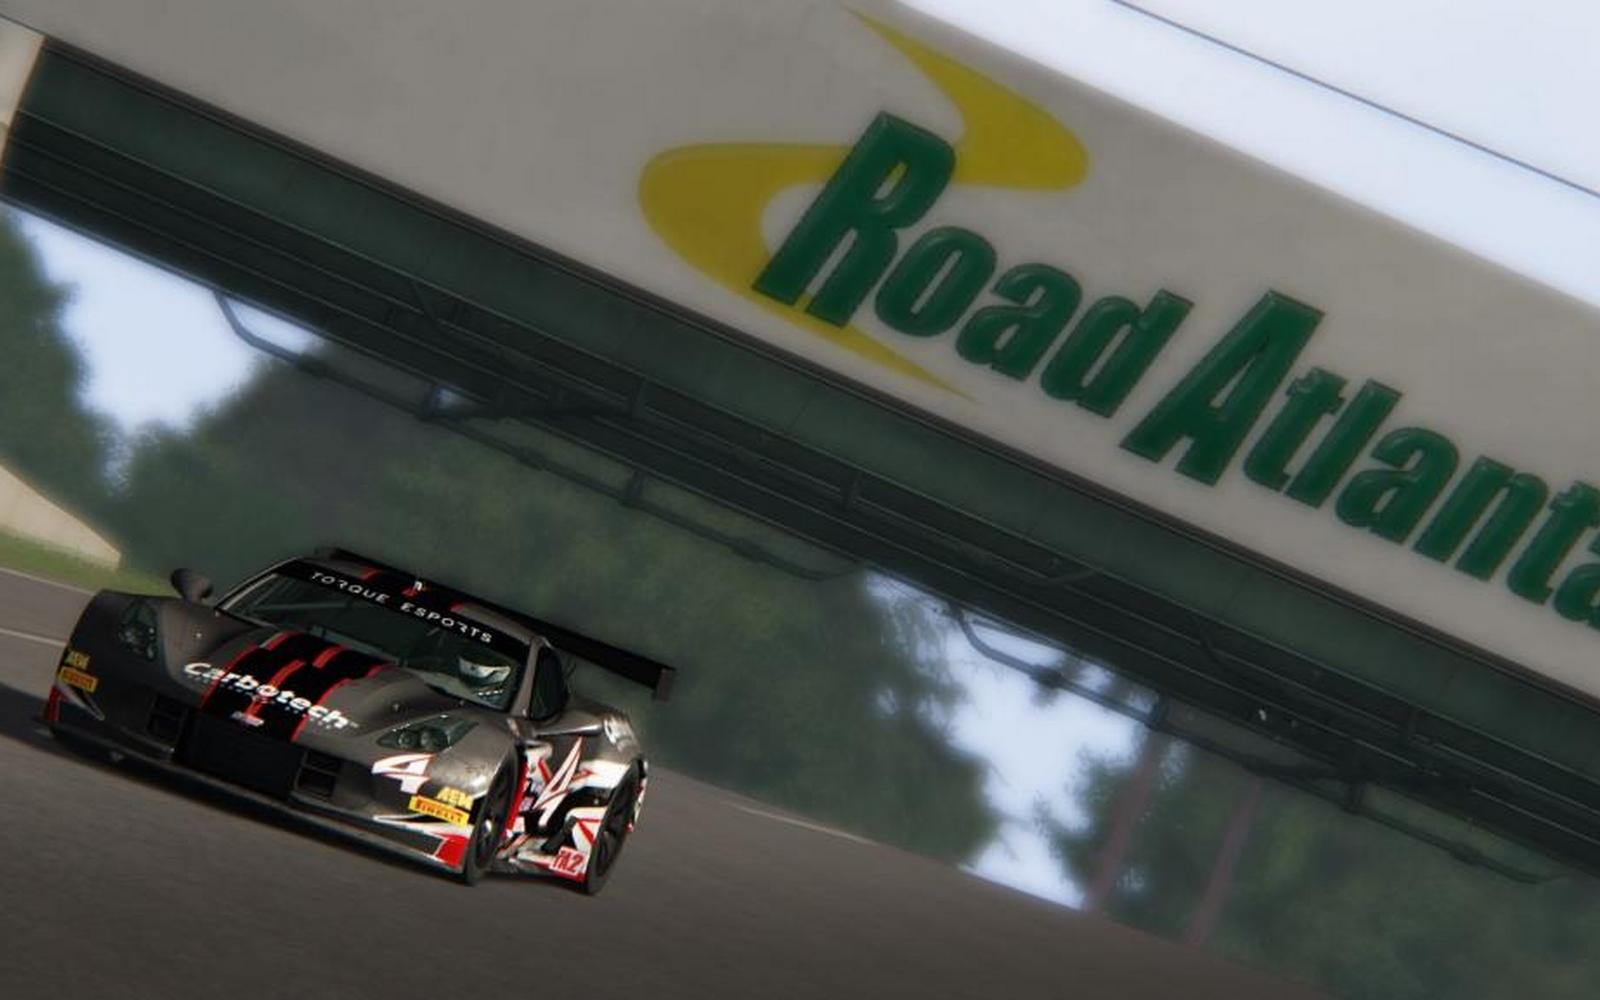 Josh Hurley and Cameron Lawrence Win Big at Virtual Road Atlanta